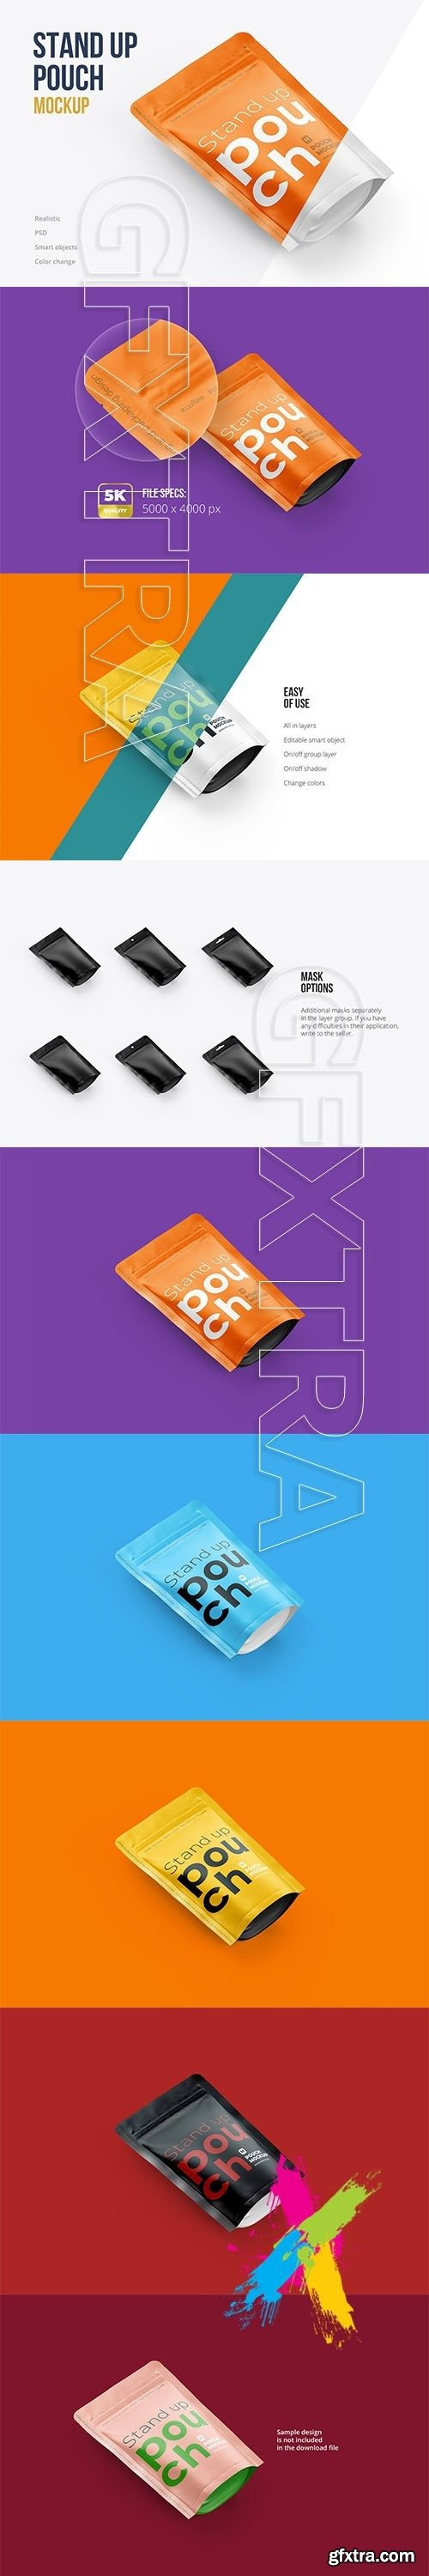 CreativeMarket - Stand Up Pouch Mockup Top Half Side 5142934